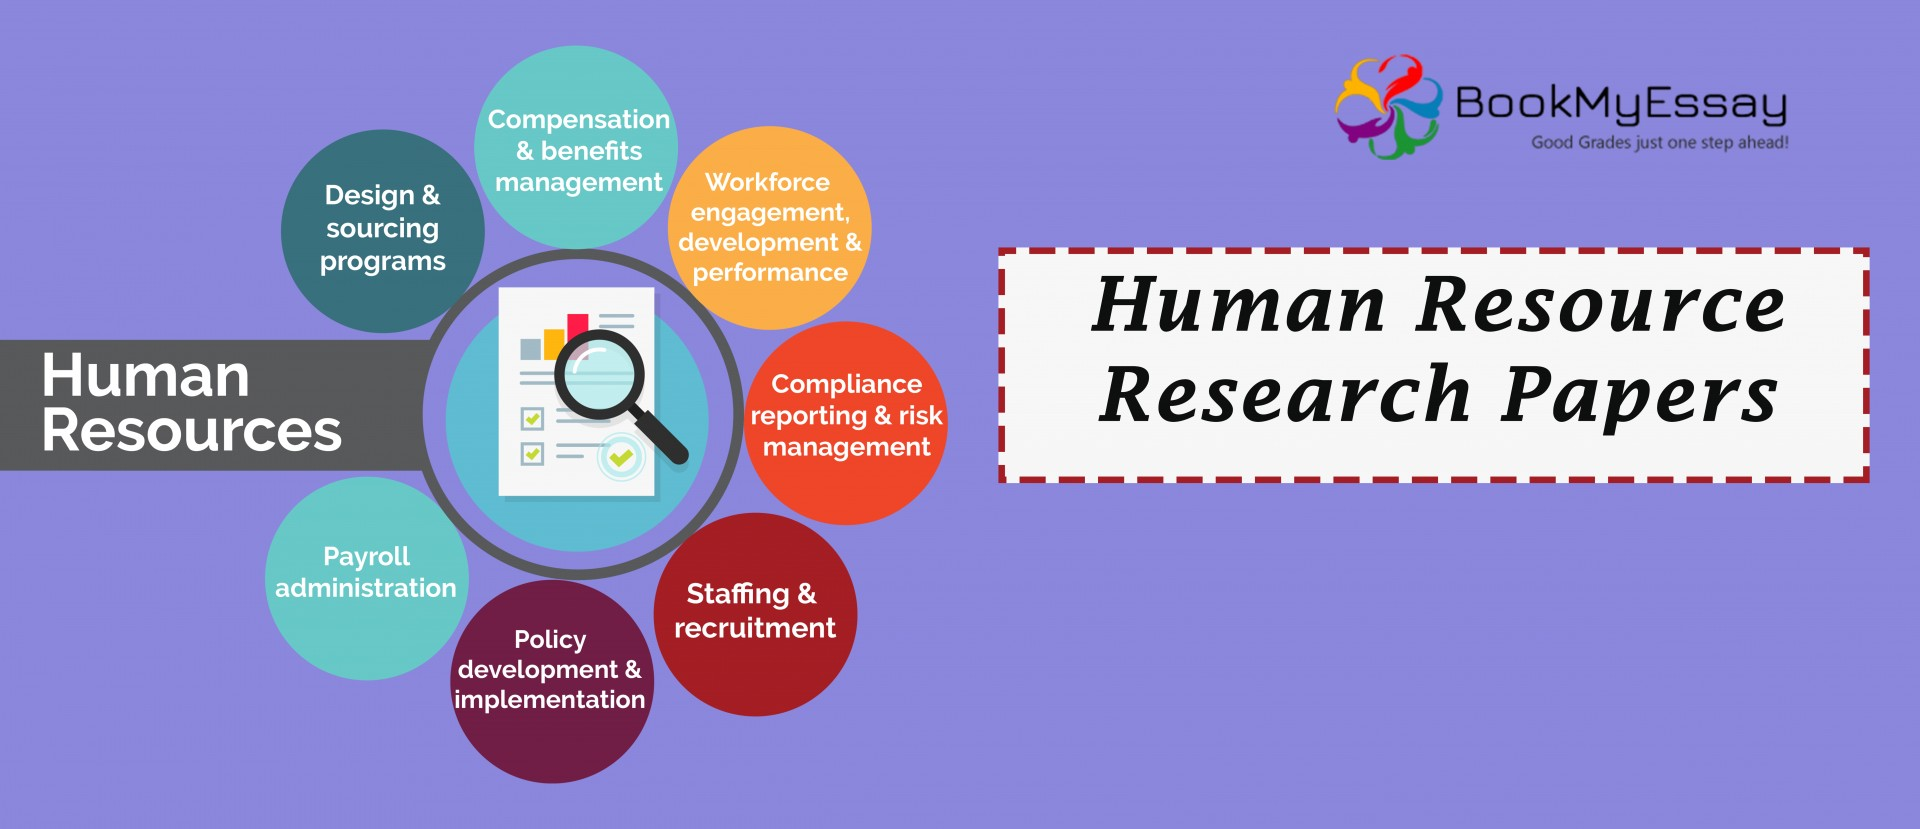 003 Human Resource Researchs 2018fit95672c4134ssl1 Help With Astounding Research Papers Websites That Writing Nursing Paper 1920